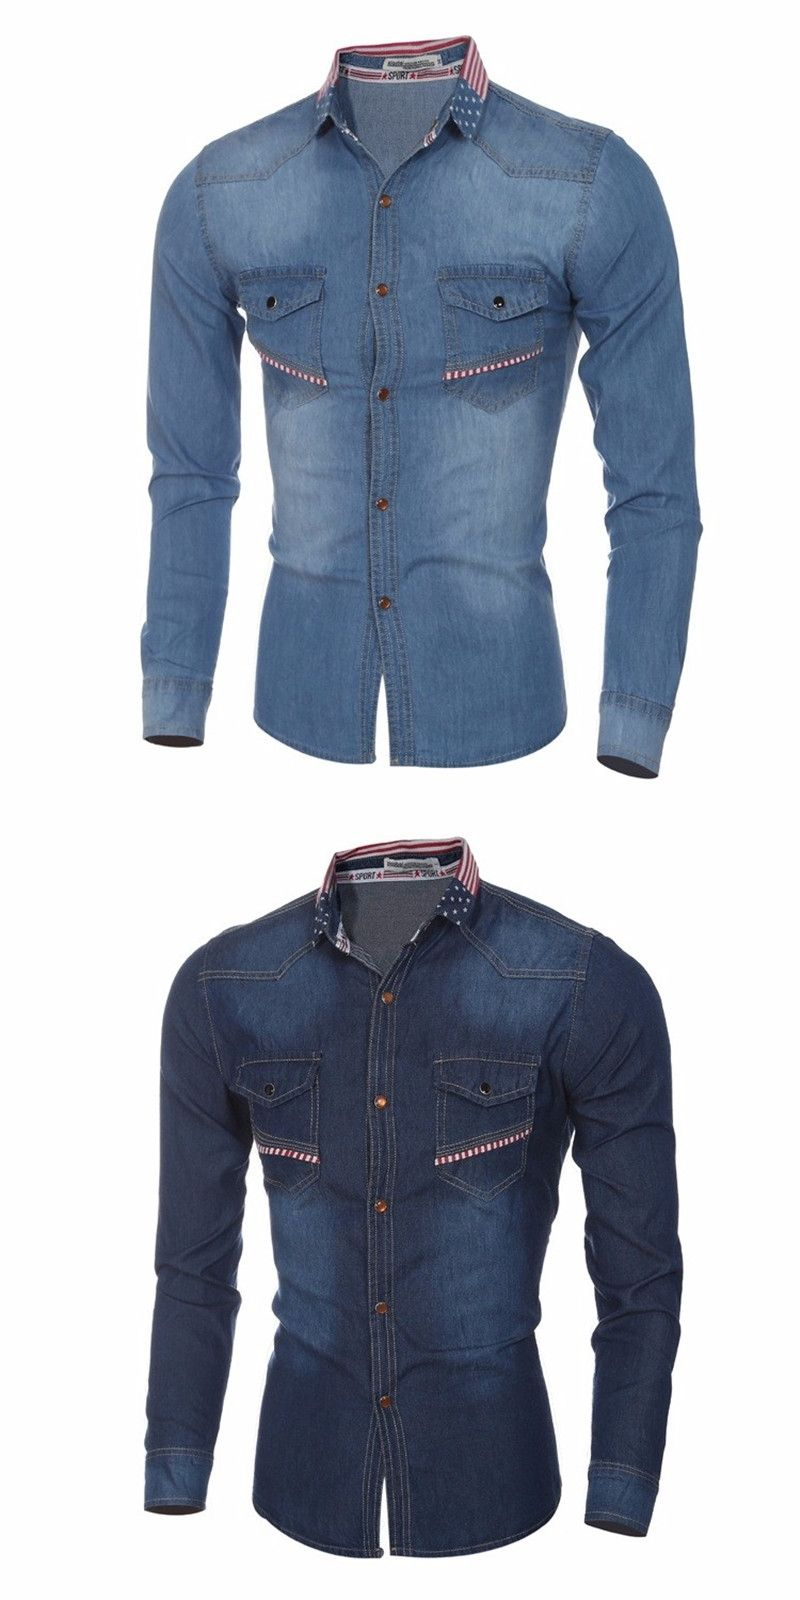 caf32cdc2a9 New 2016 Brand Men Denim Shirt Slim Fit Casual Jeans Shirt Long Sleeve Male  Cowboy Shirts Camisa Jeans Masculina chemise homme